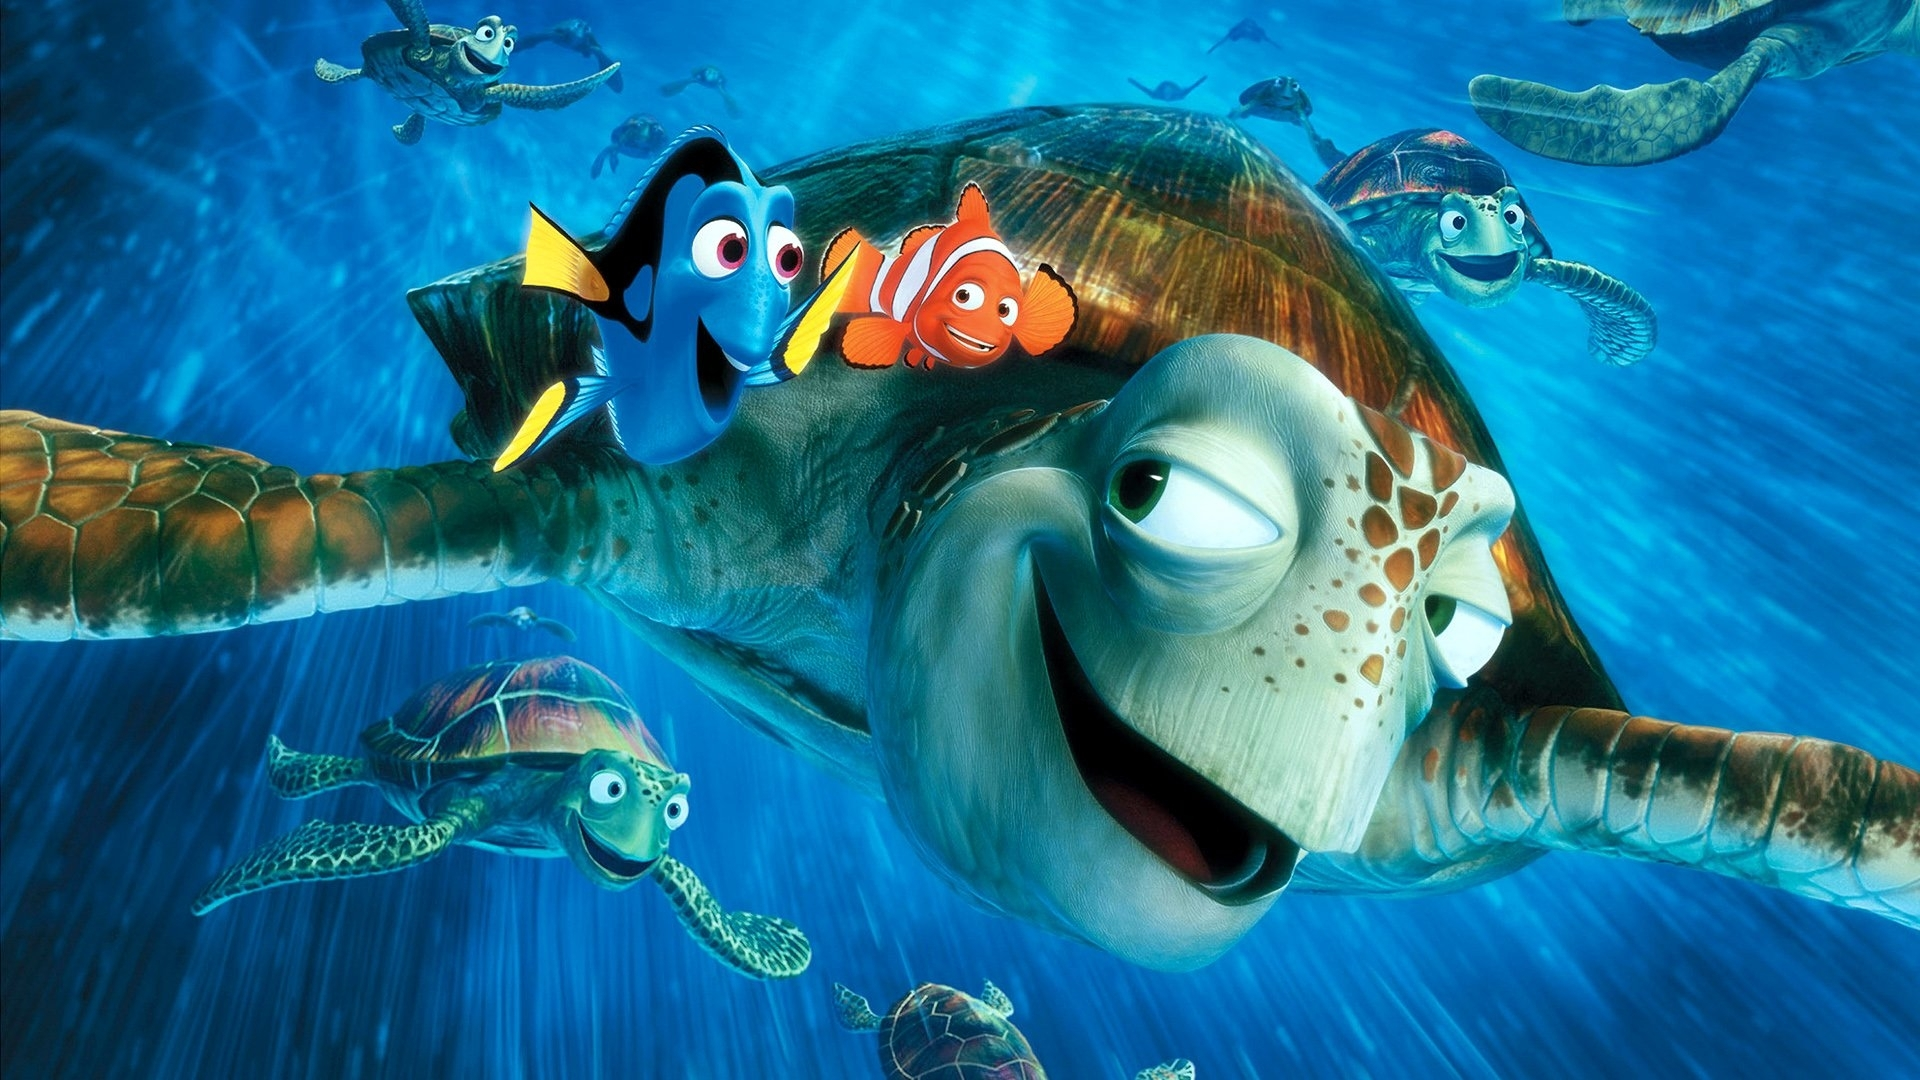 10 New Finding Nemo Wallpaper FULL HD 1080p For PC Desktop